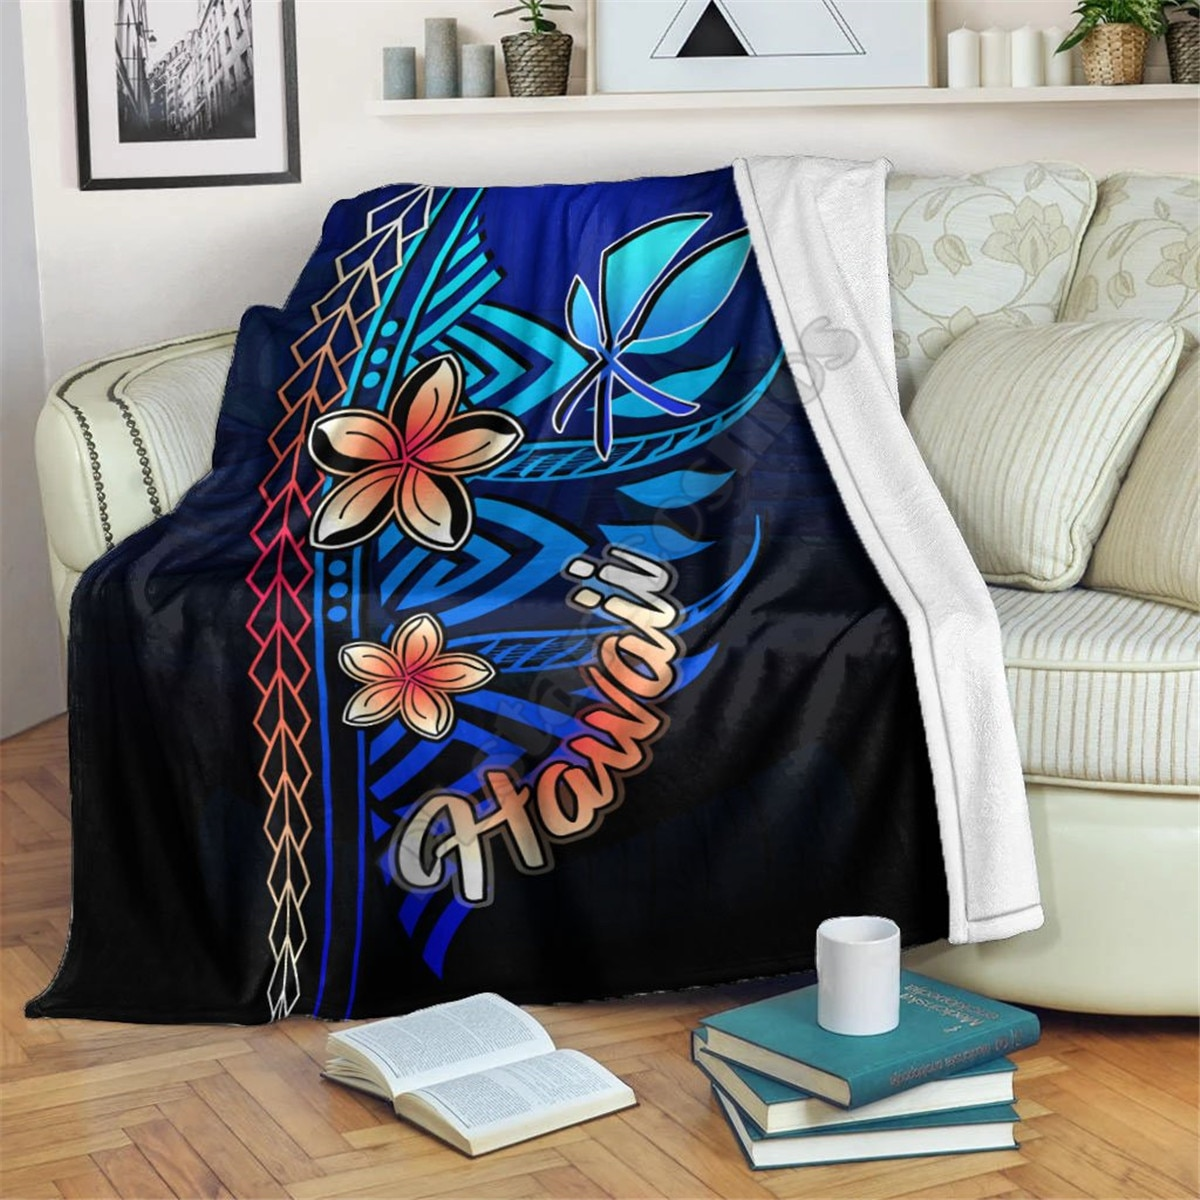 Hawaiian Turtle Premium Blanket 3D printed Sherpa Blanket on Bed Home Textiles HOME ACCESSORIES